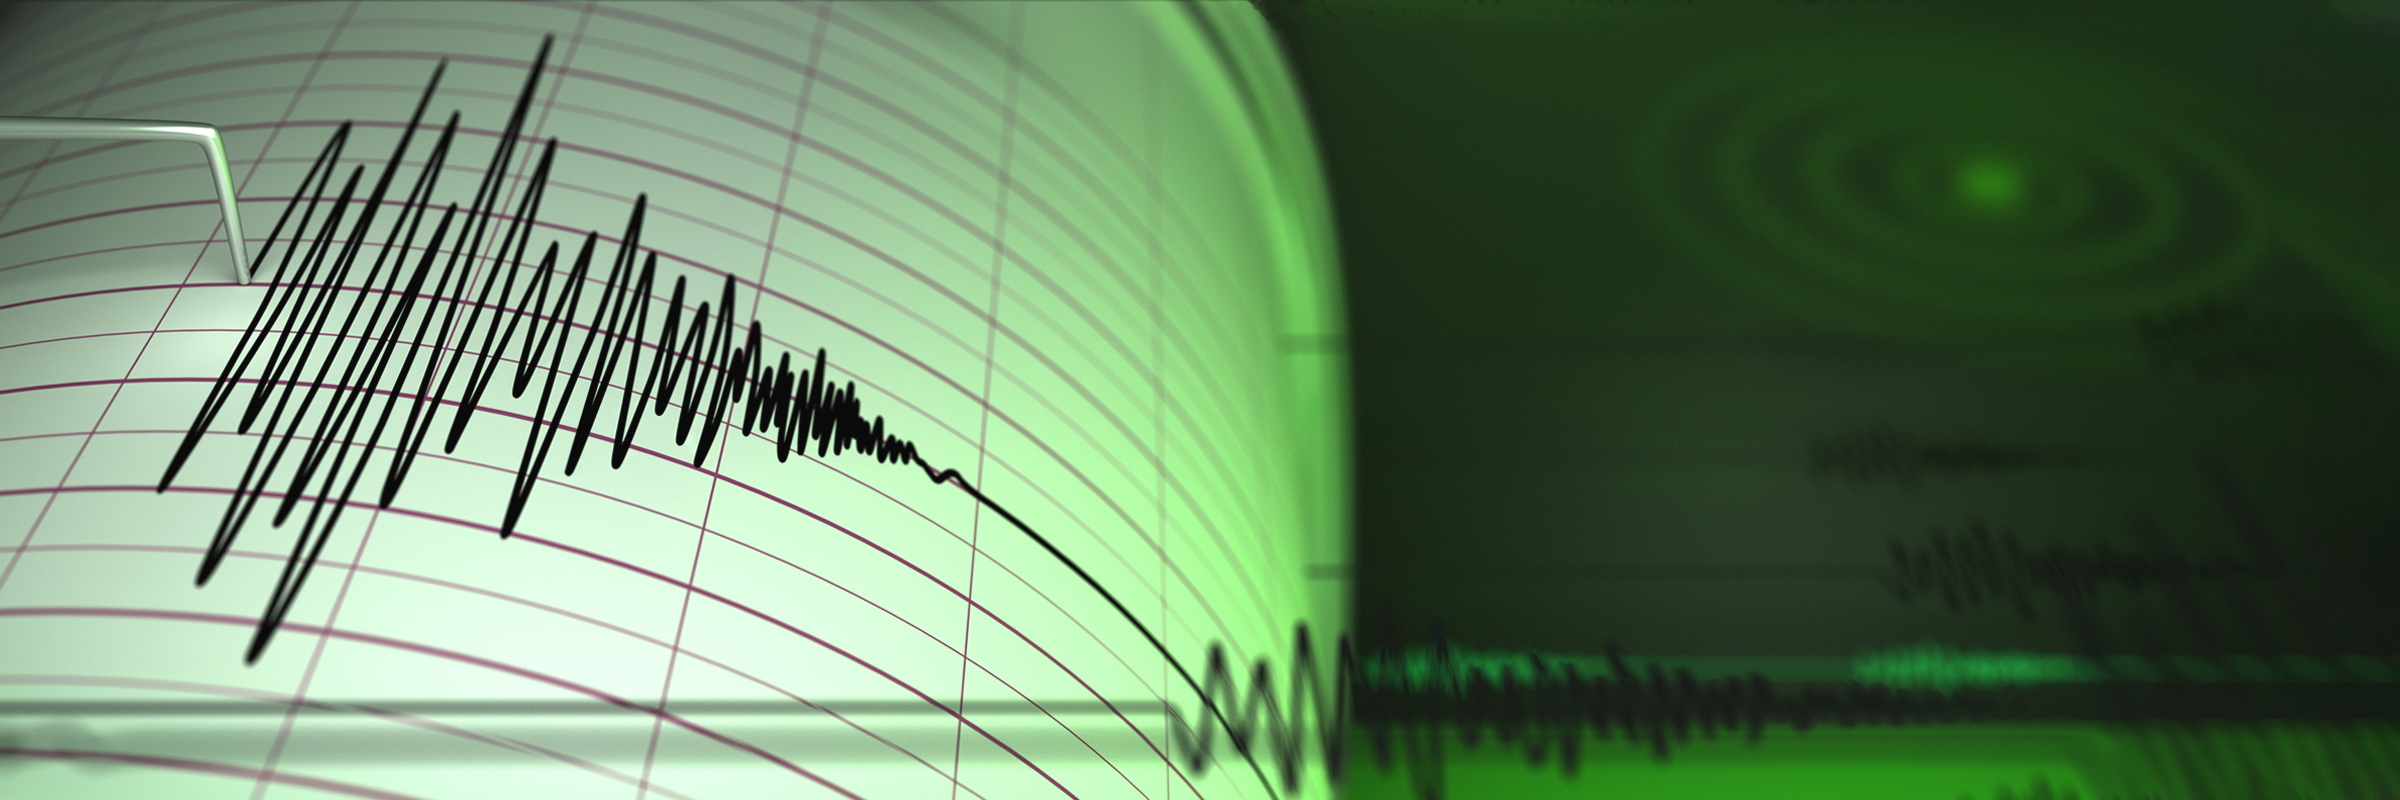 Seismic Activity Home Earthquakes